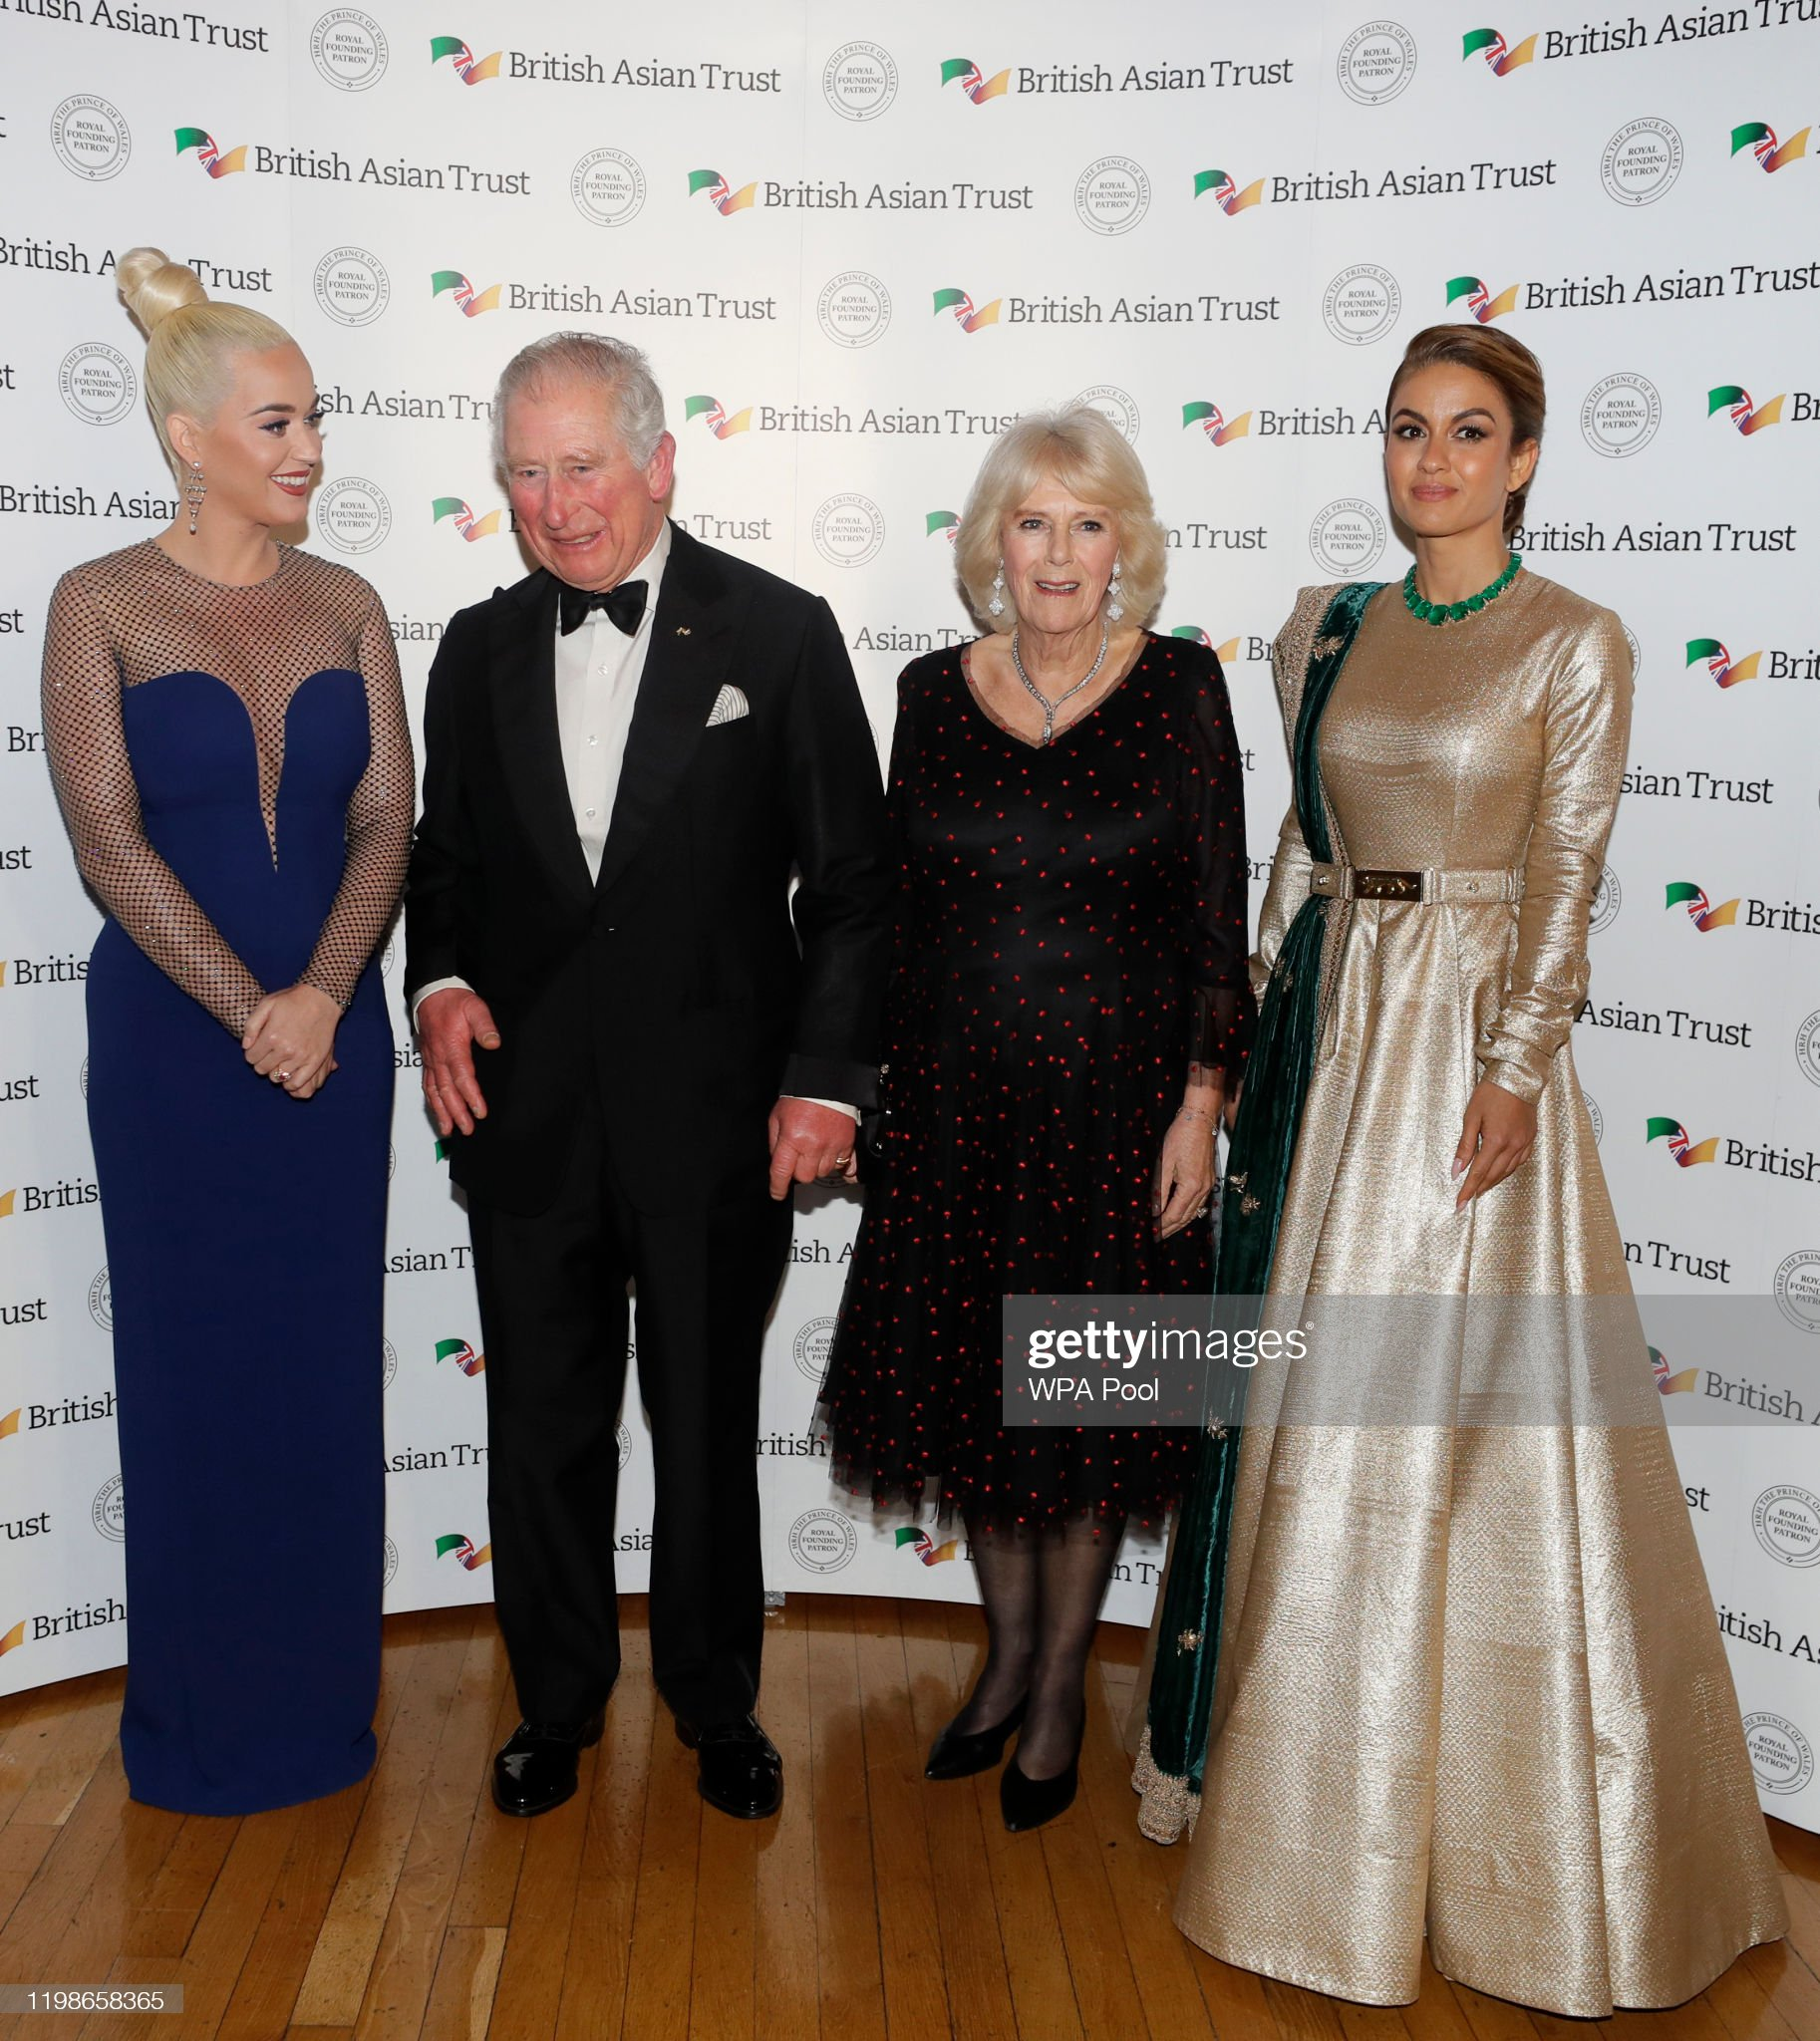 The Prince Of Wales And Duchess Of Cornwall Attend A Reception To Celebrate The British Asian Trust : News Photo